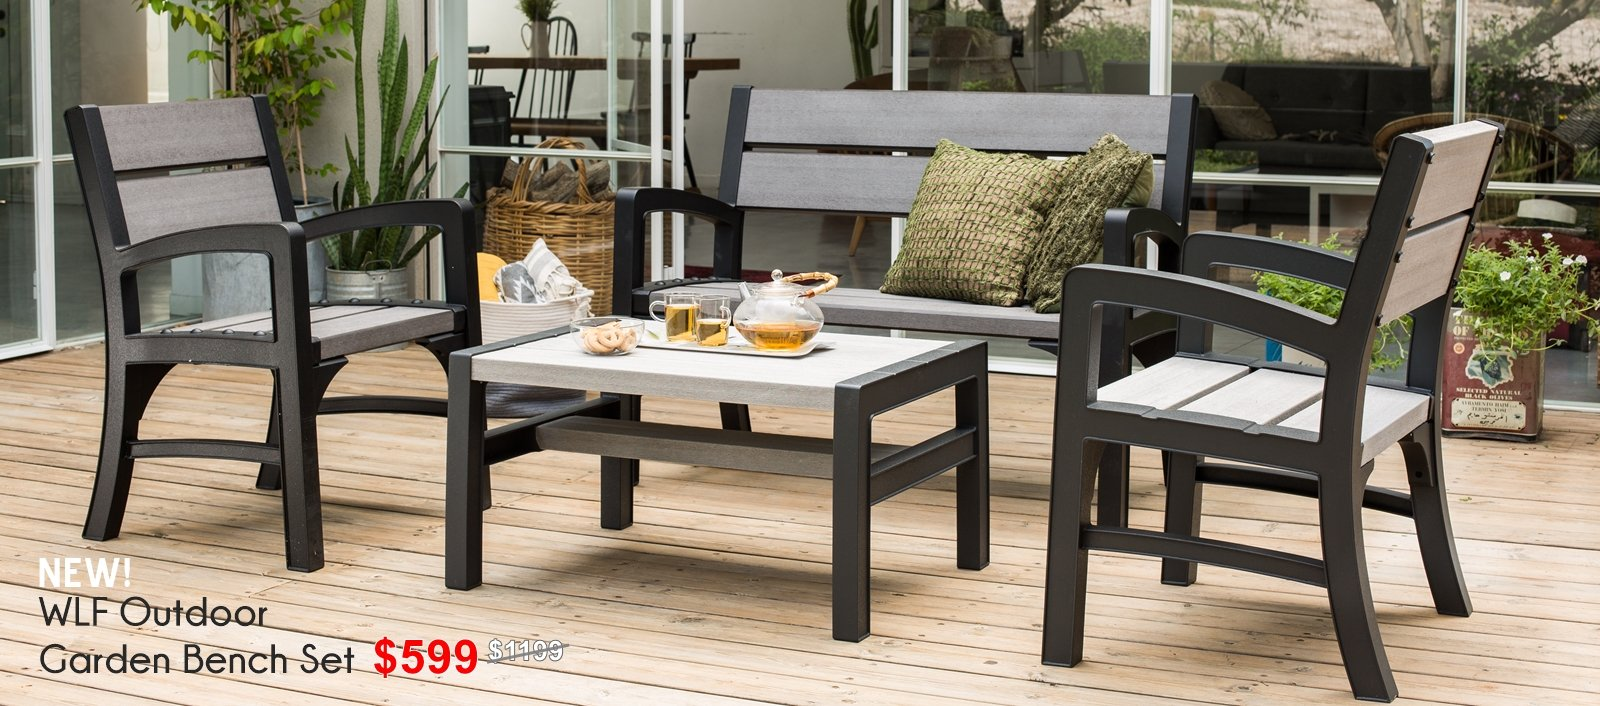 Keter wood plastic outdoor bench seat chair dining set waterproof outdoor sofa furniture set the home shoppe keter sg